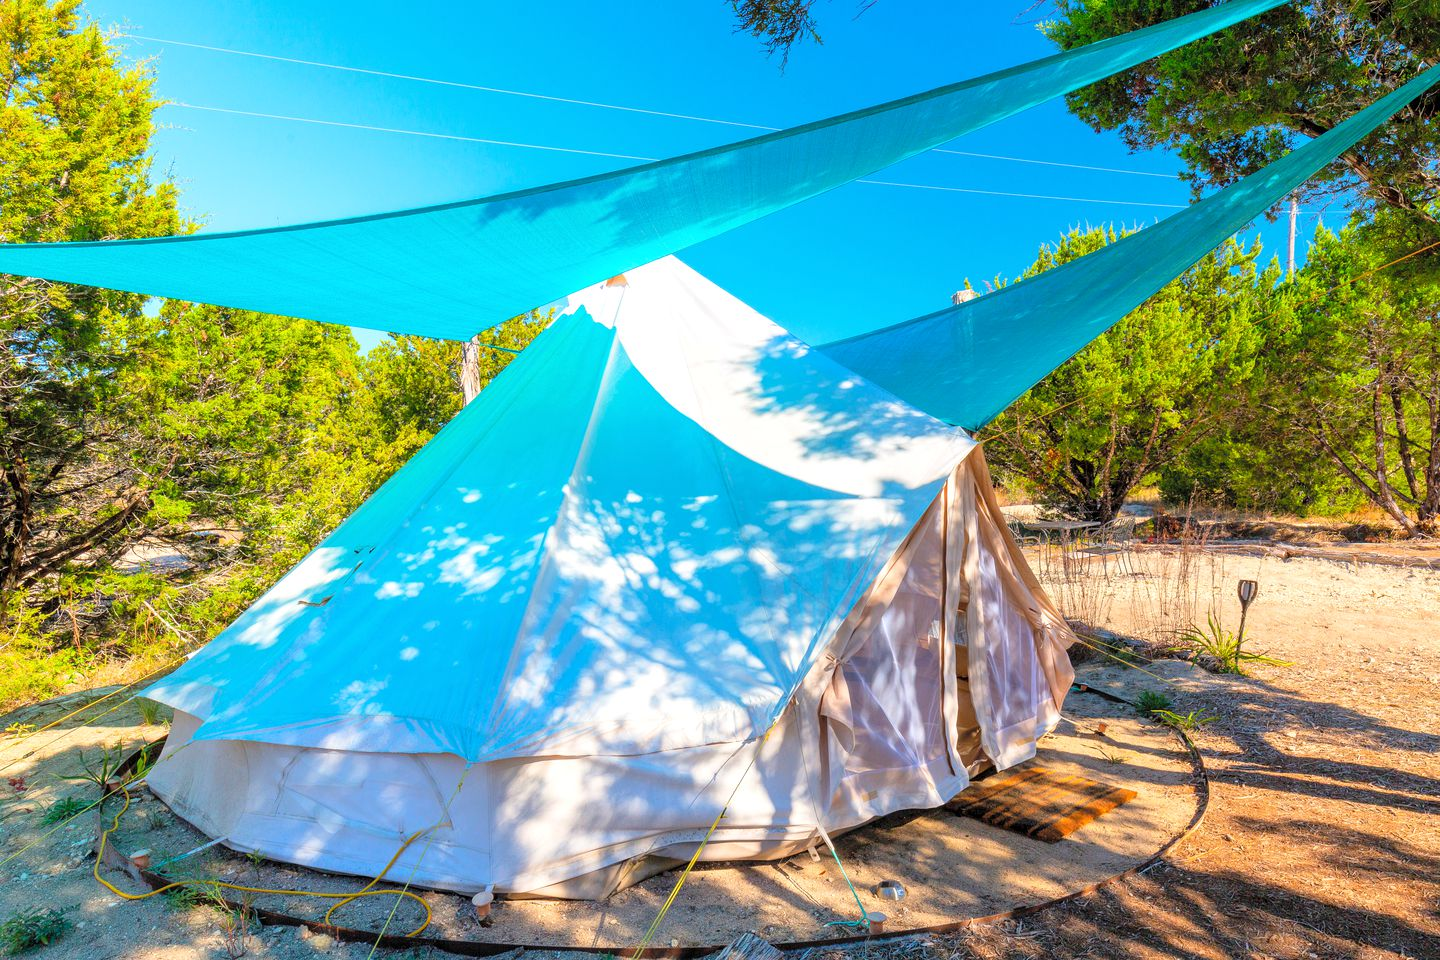 Johnson City accommodation perfect for bell tent glamping near Austin, TX.